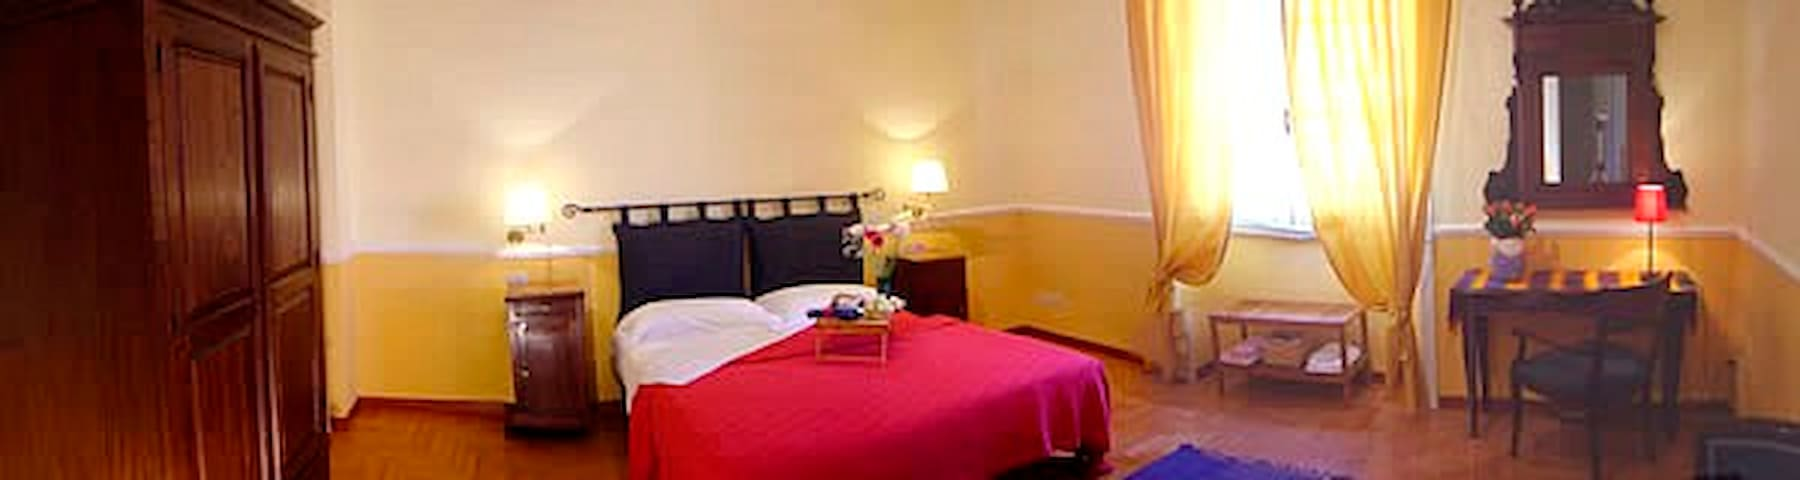 Camera doppia ampia e luminosa - Rome - Bed & Breakfast